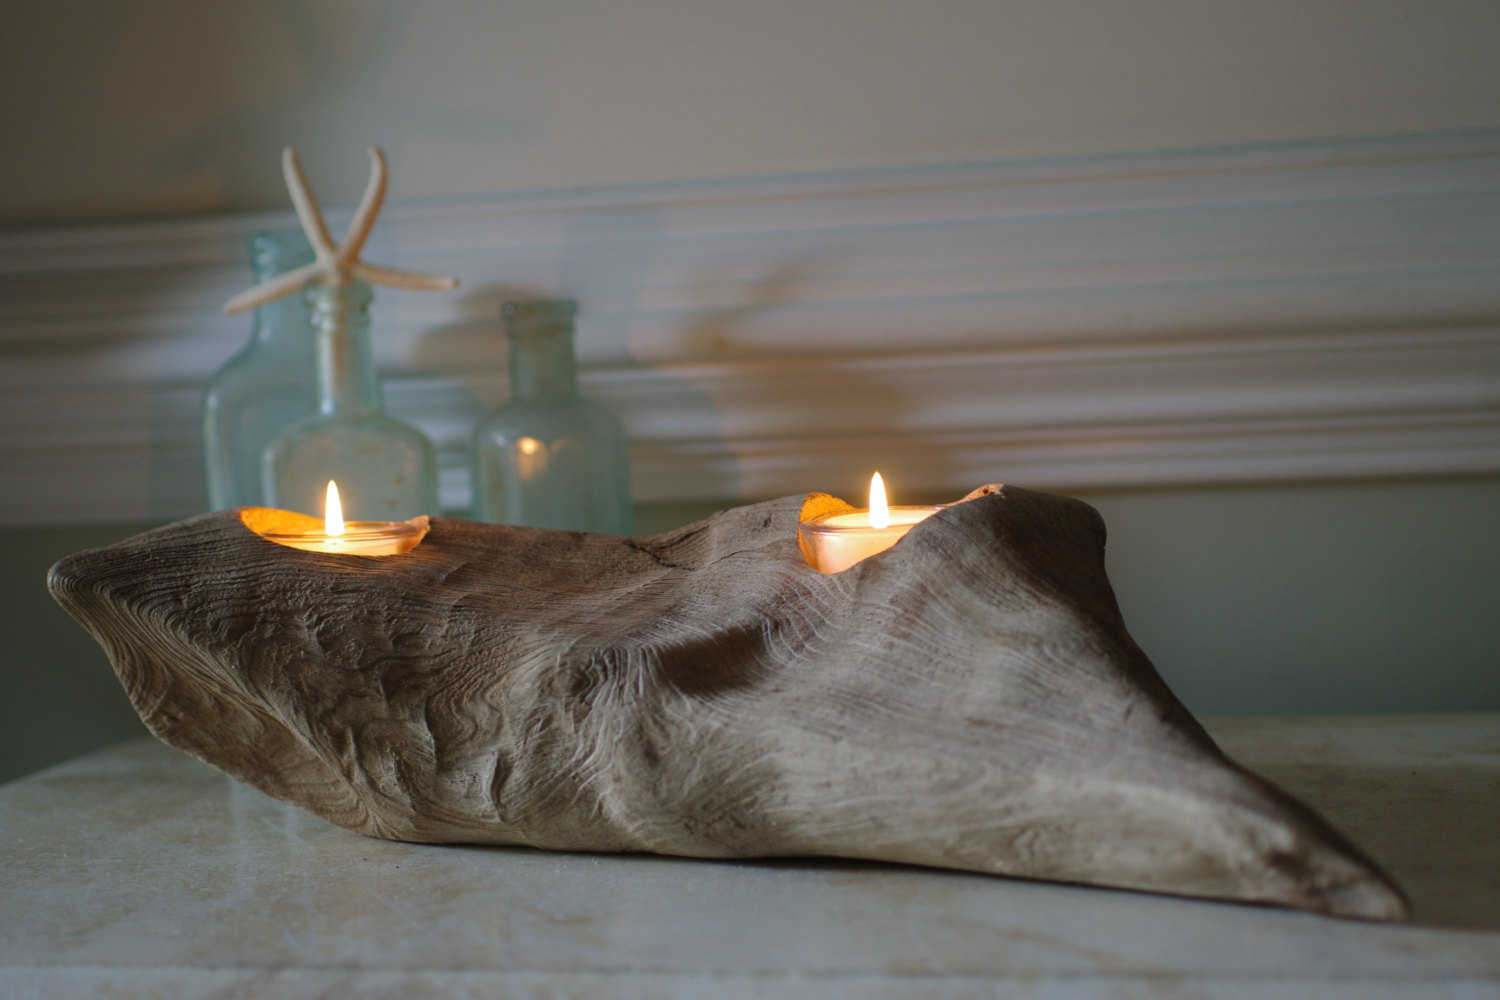 decorate for beach wedding reception with driftwood candle holders.  from by the seashore decor via emmalinebride.com